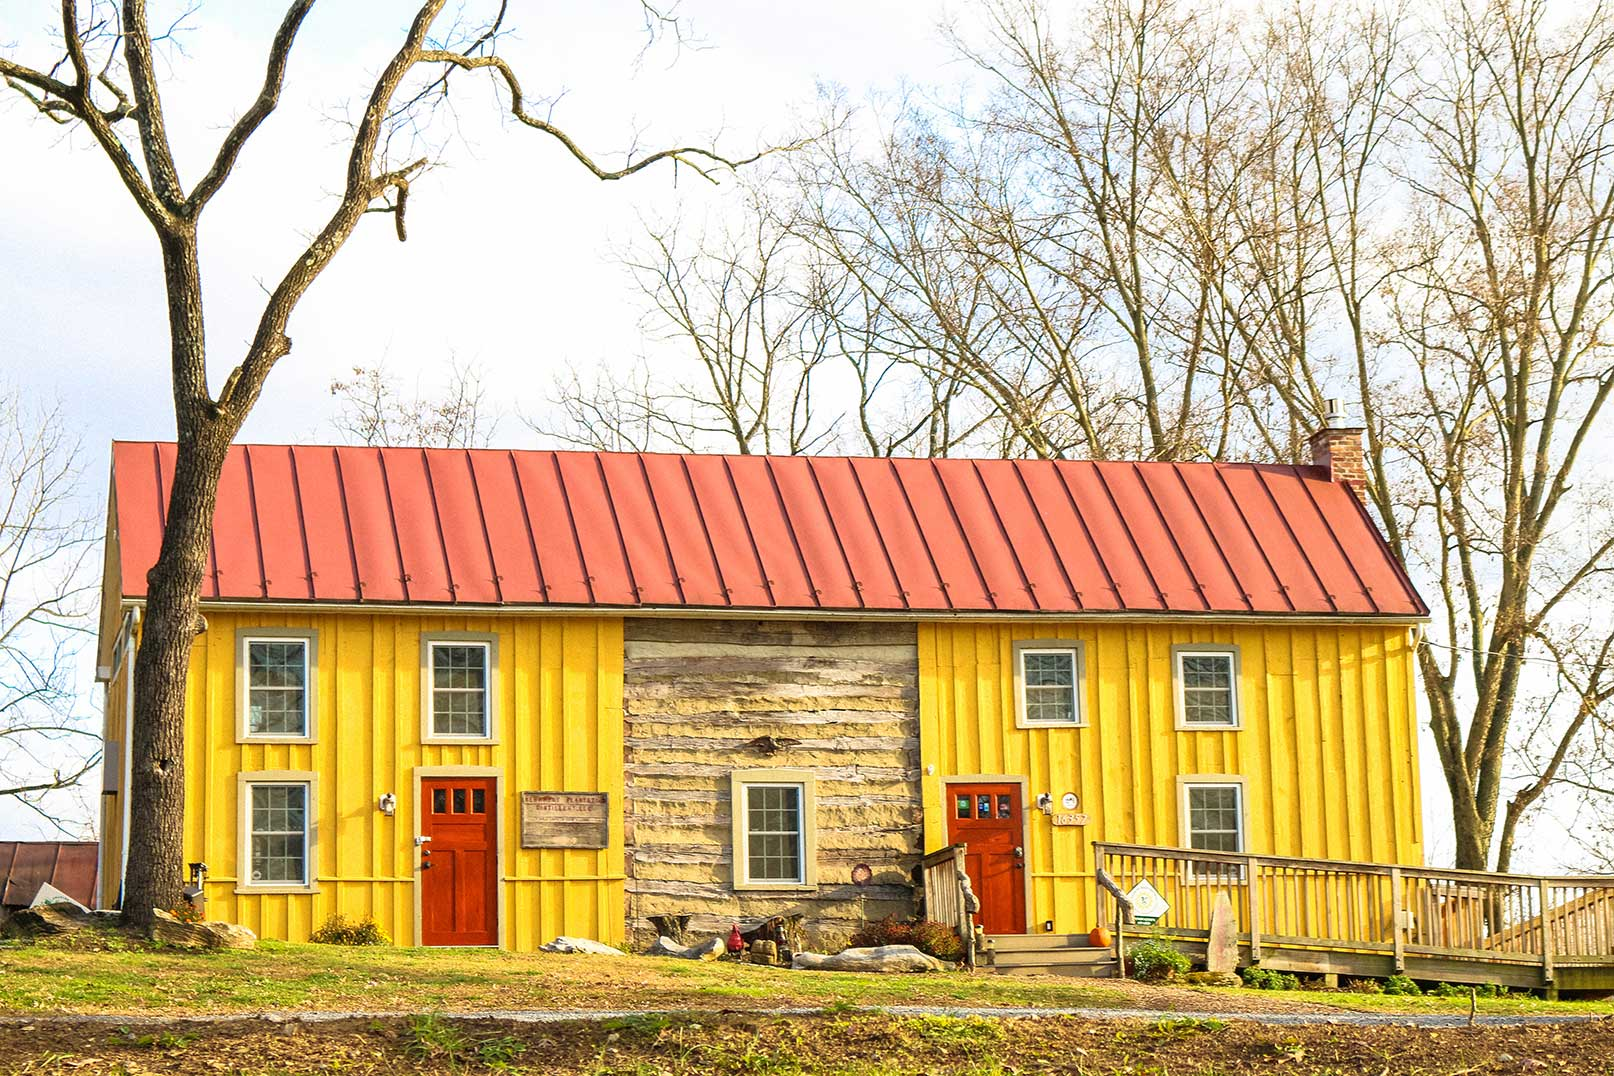 Historic log cabin building in Charles Town, WV